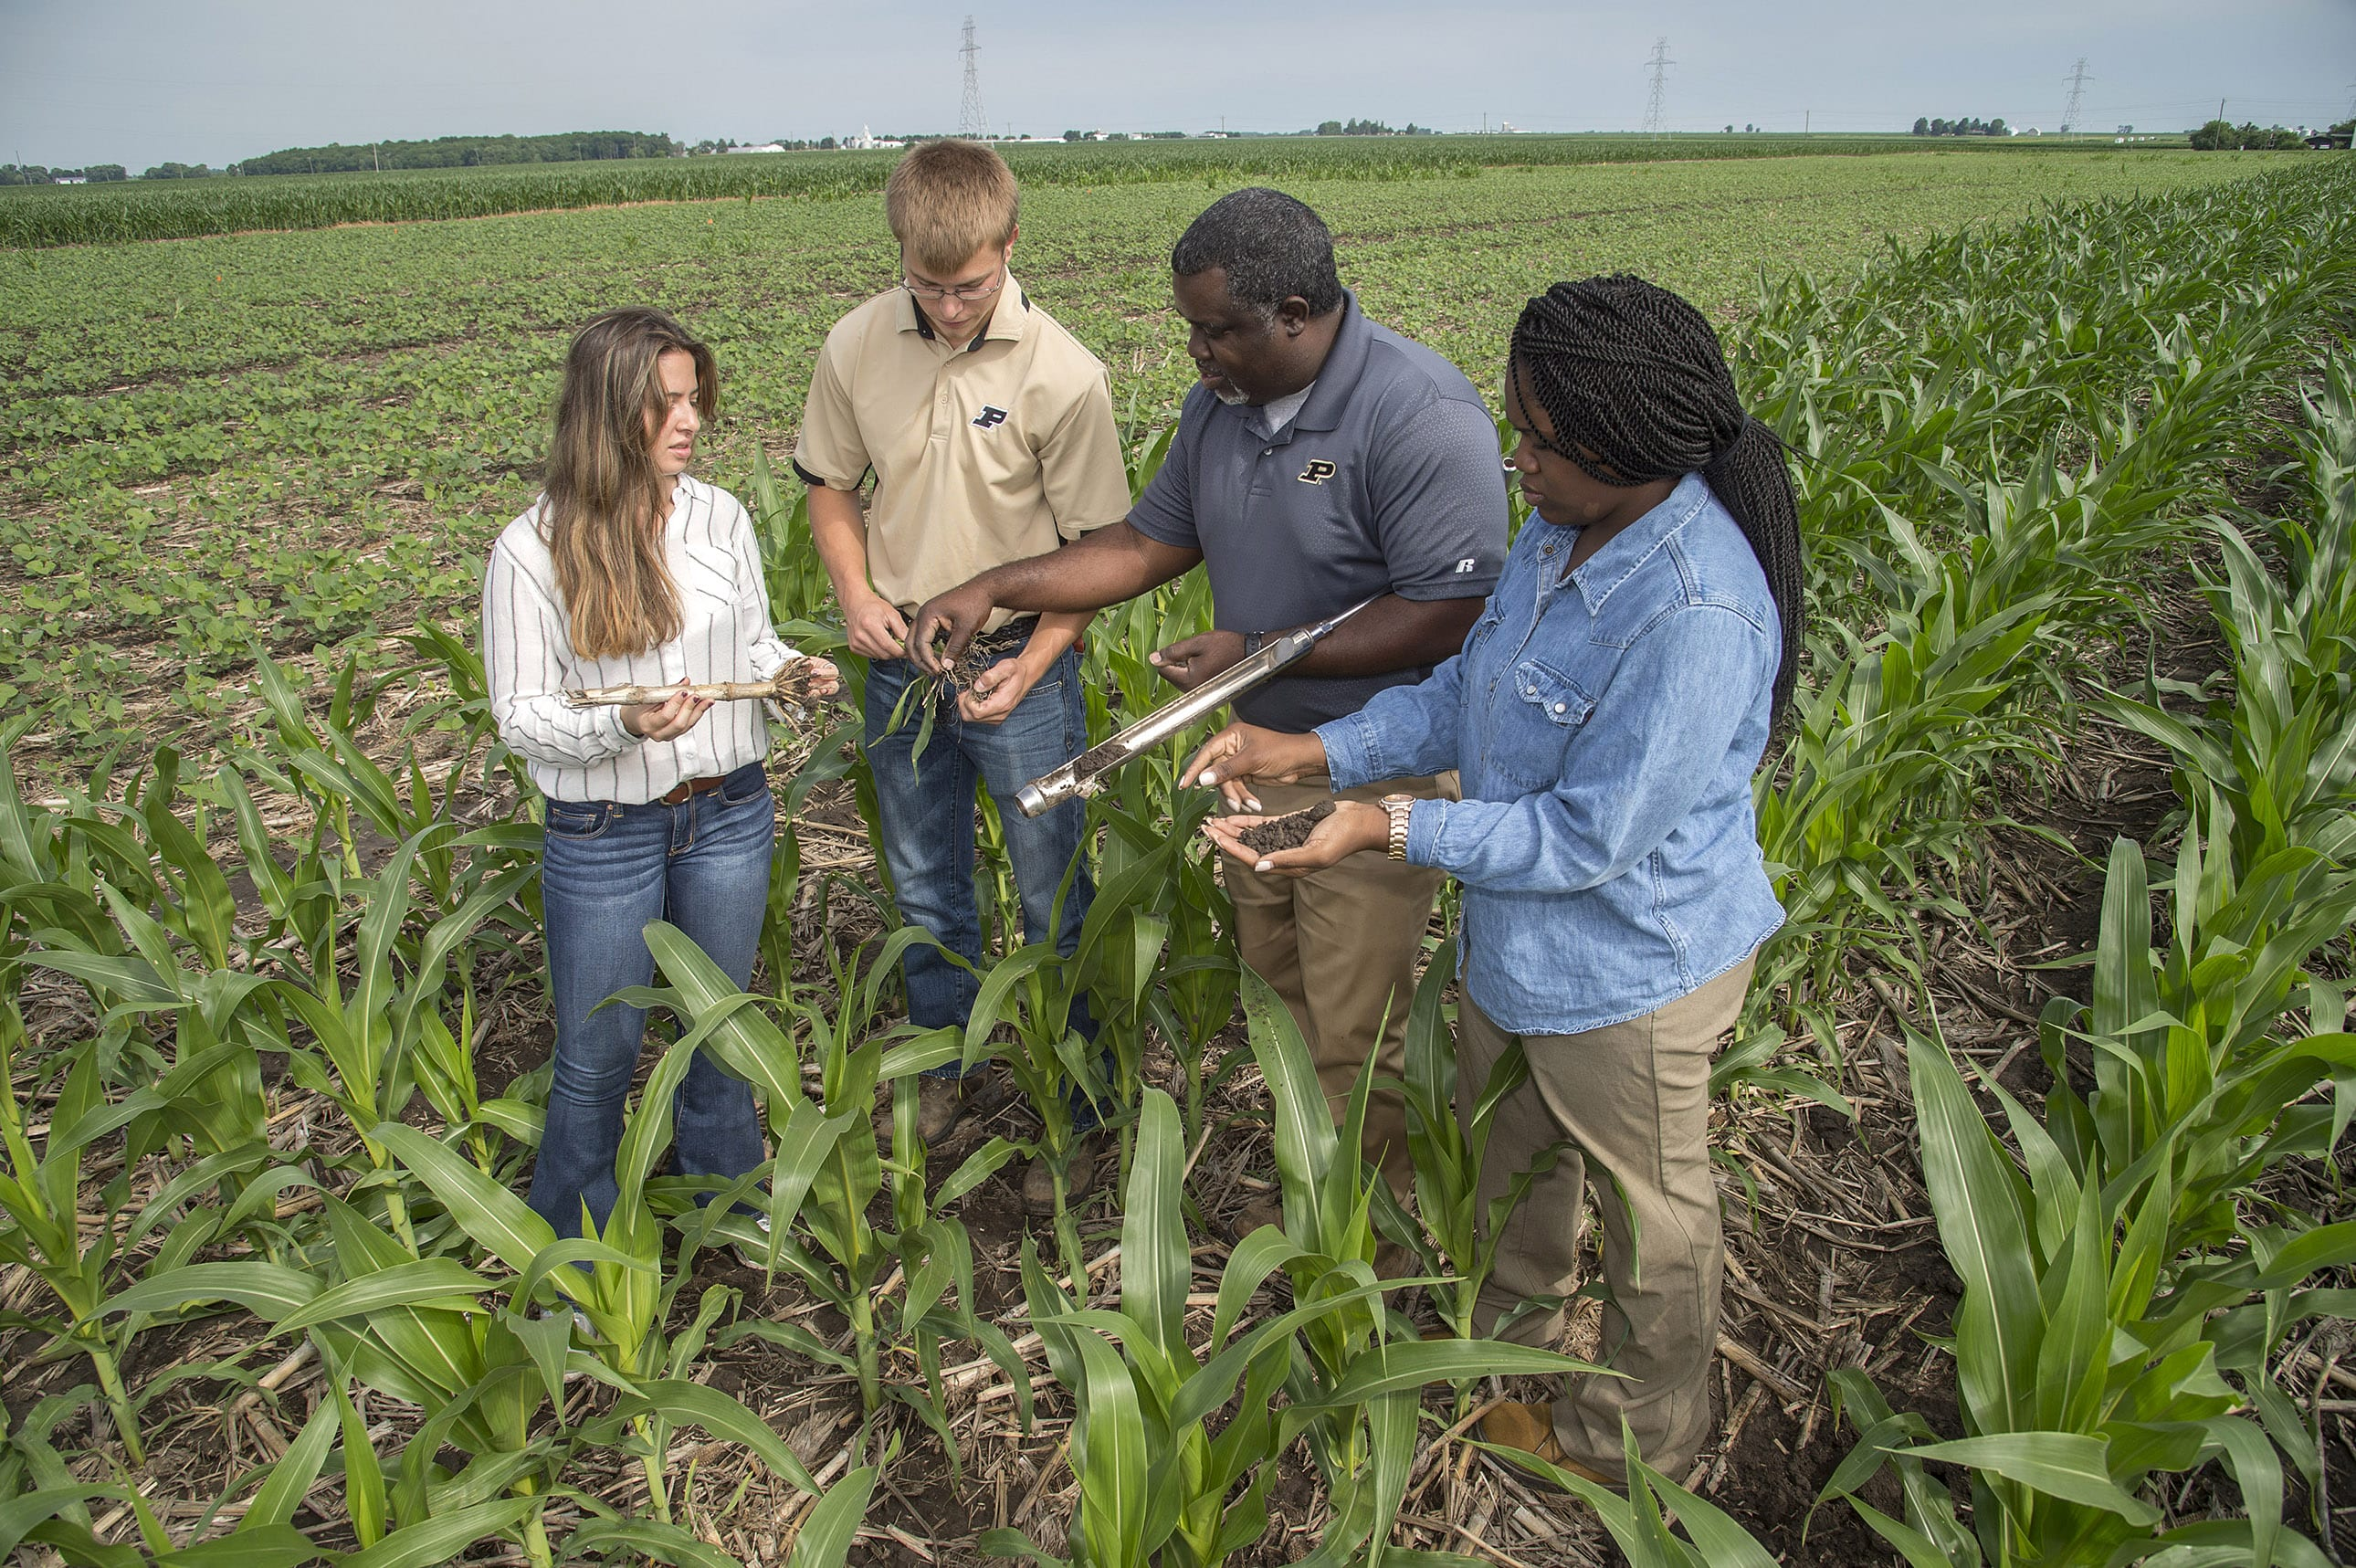 farmers collaborating on solving agriculture problems